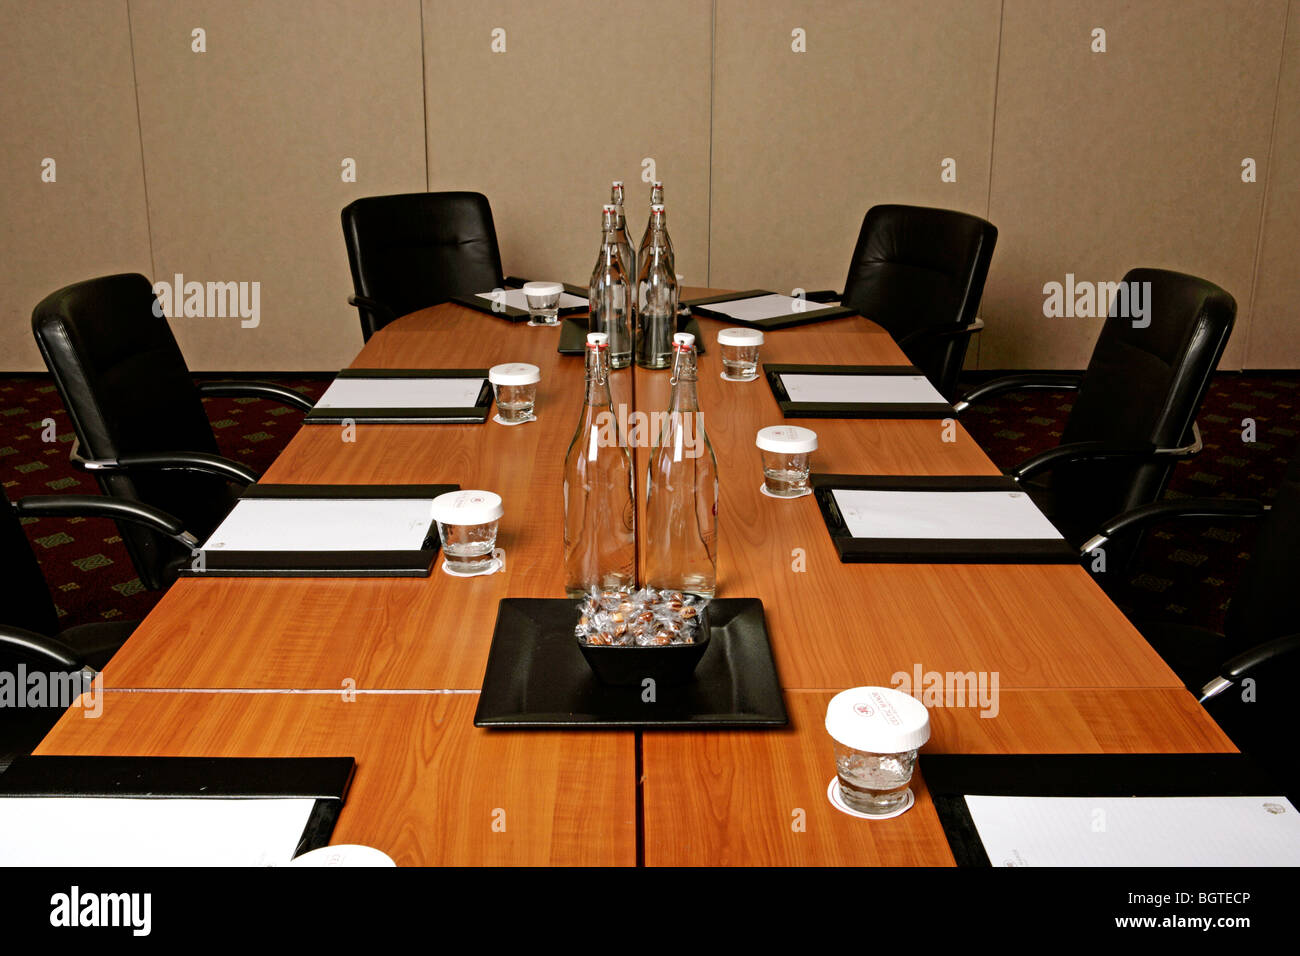 Conference Table Water Glasses Set Stock Photos Conference Table - Conference room table pads